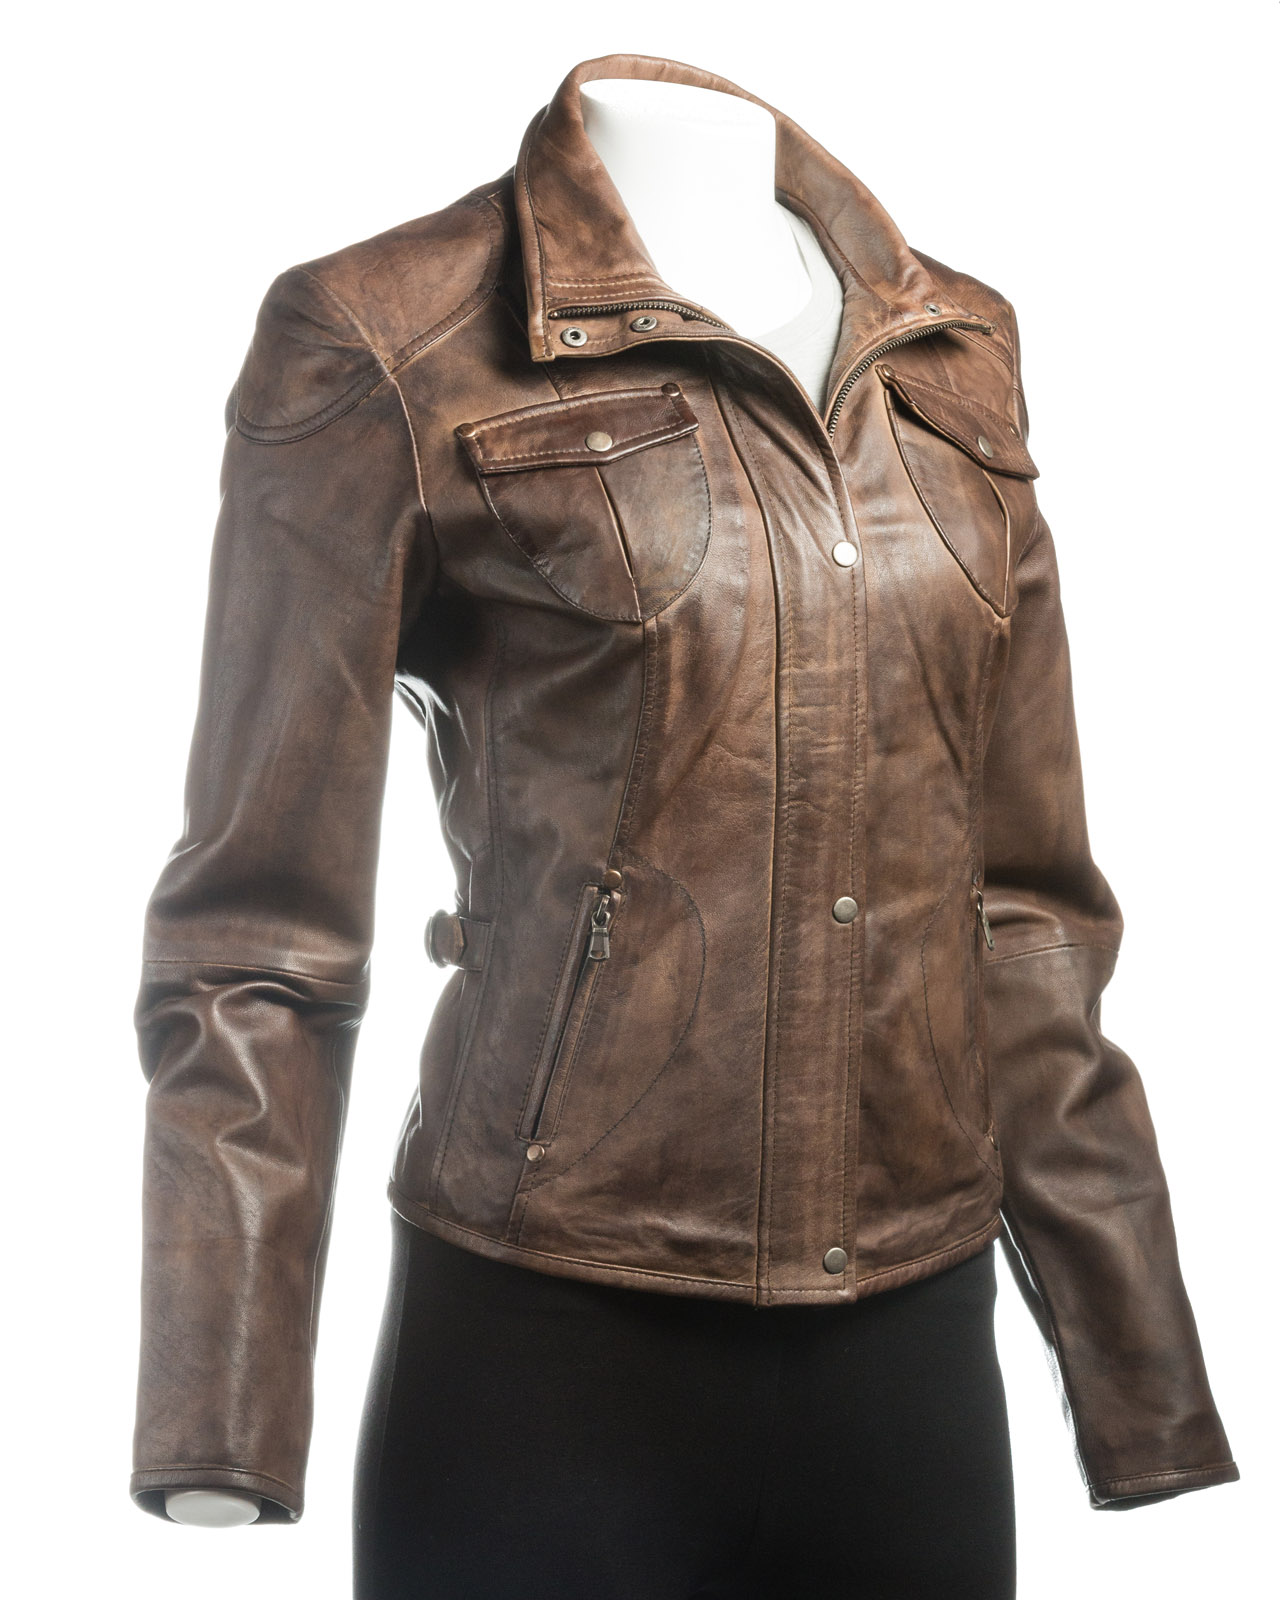 Just Reduced! This Brown % Leather Jacket Is As Soft As Butter! Short In Length But Tailored With Tabs And Buttons On The Back And Sleeves, As Well As Lapel Pocket And And 2 Slanted.